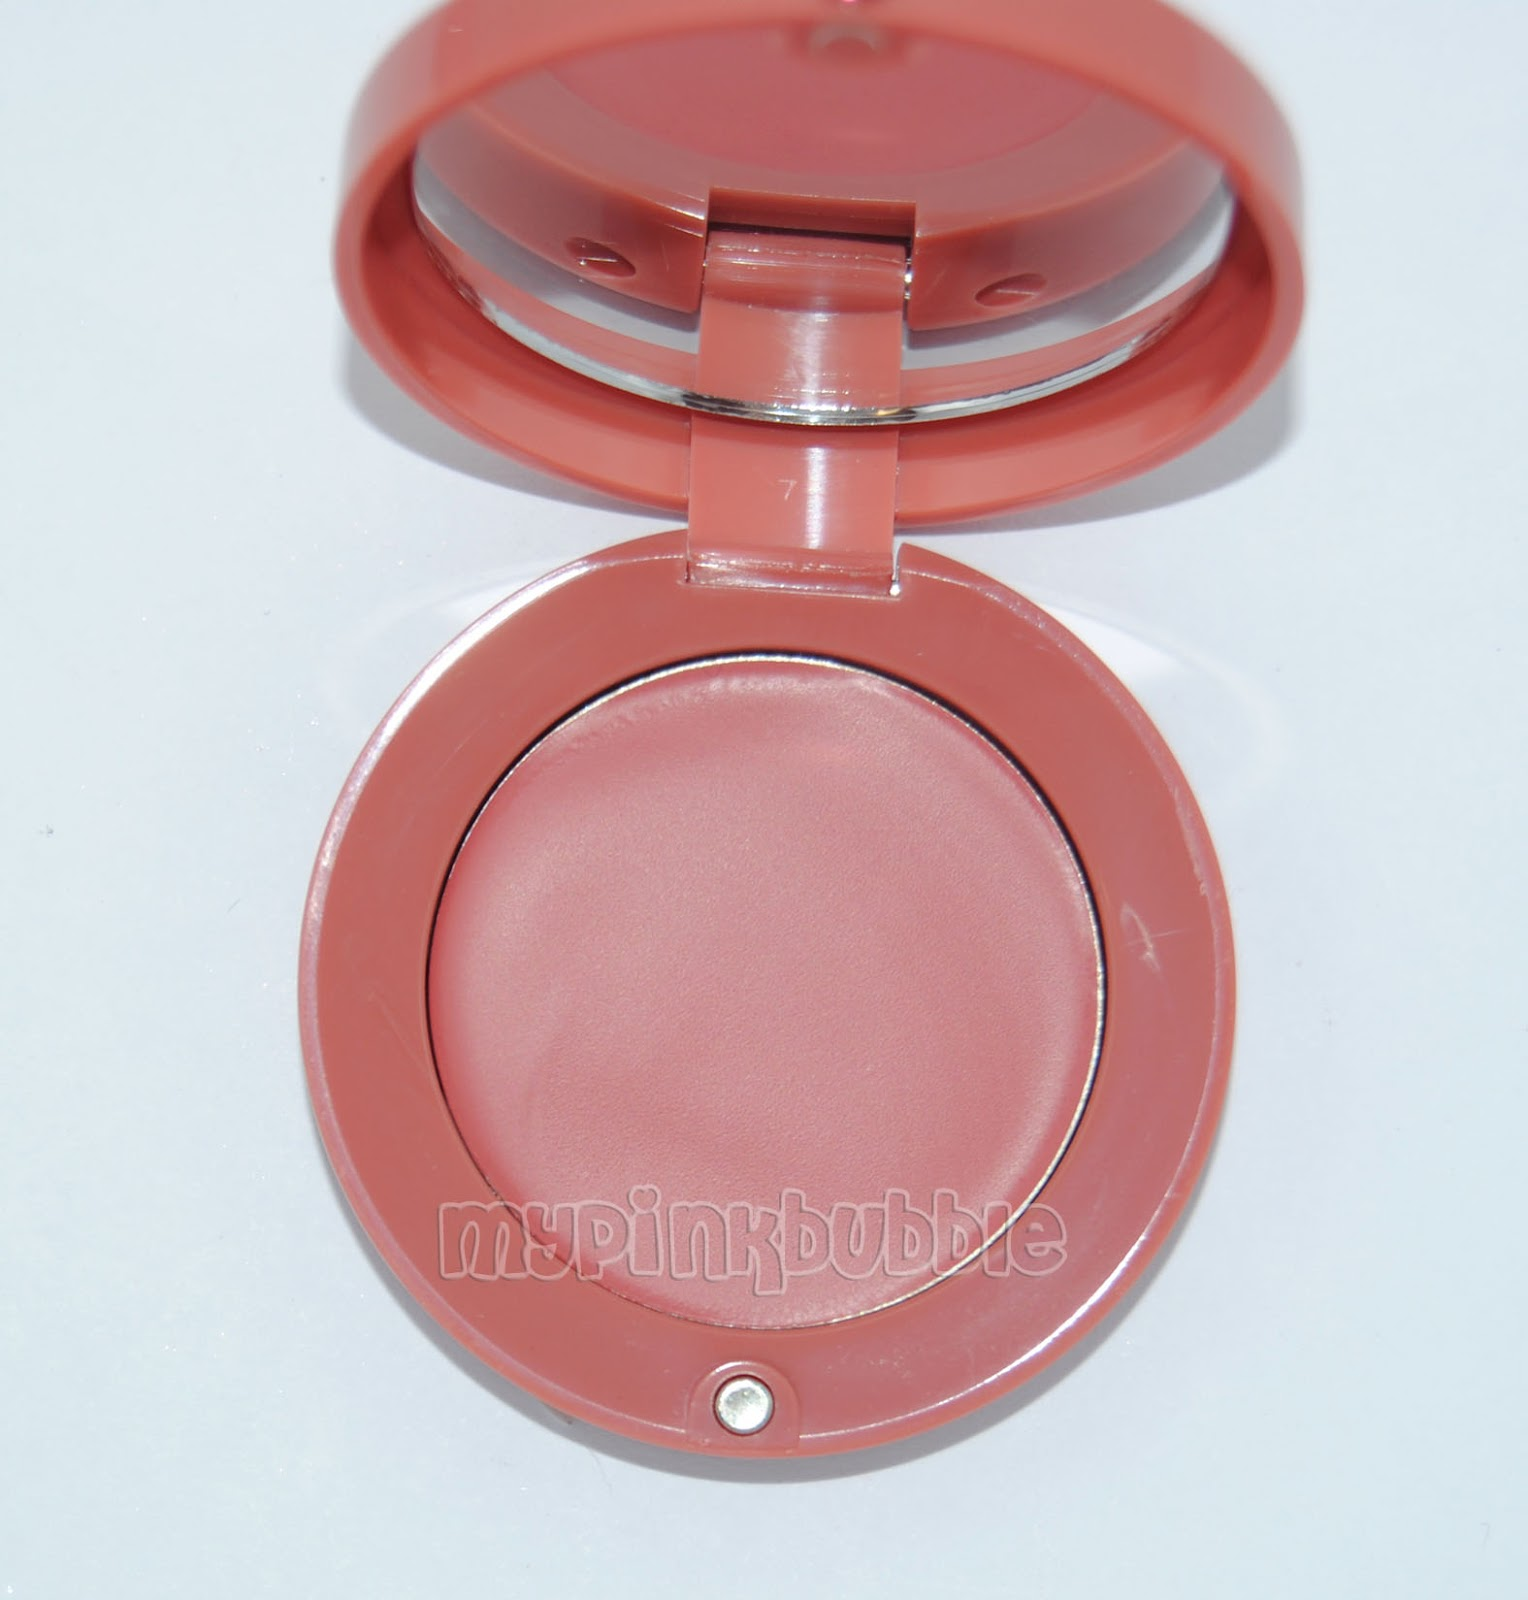 Cream blush bourjois 04 sweet cherry